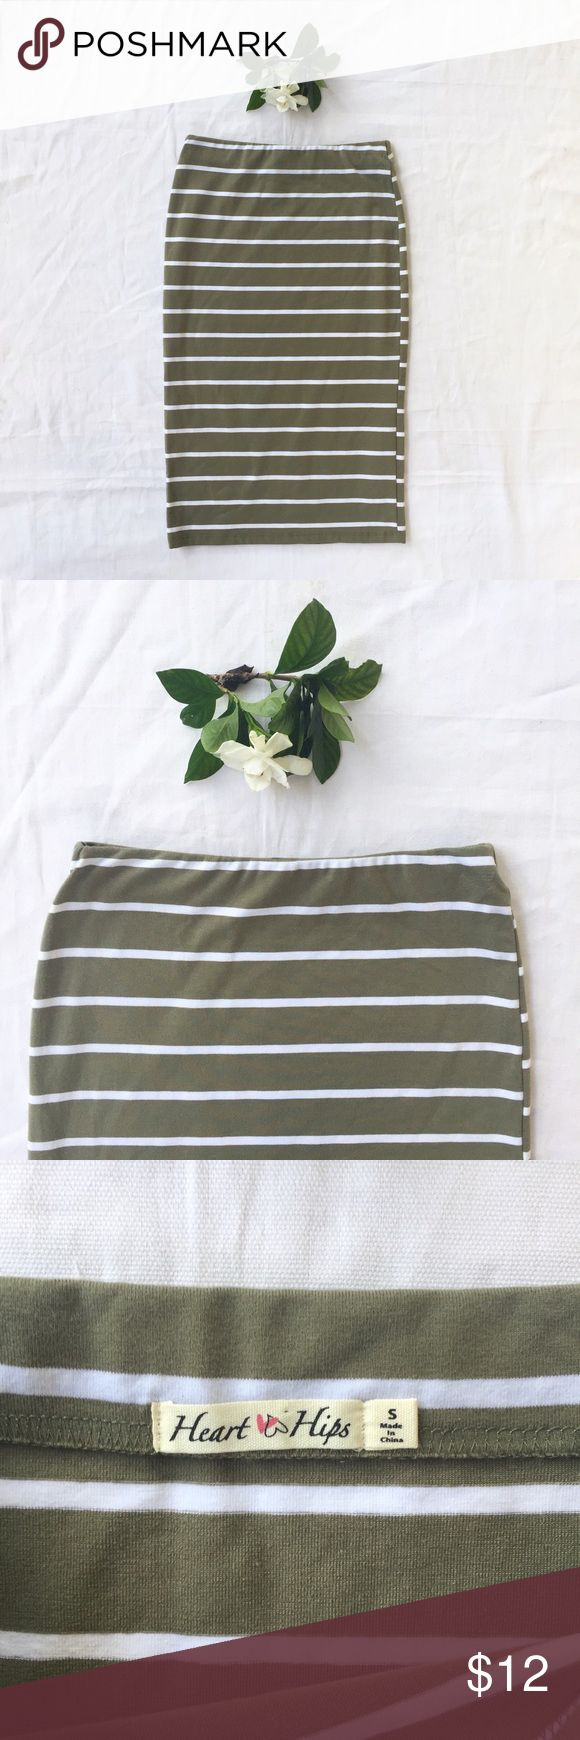 Heart & Hips | Jersey Knit Pencil Skirt | Small Sage green and white striped jersey knit pencil skirt. Soft stretchy fabric - so comfortable! Can be dressed up or down depending on the occasion. Like new condition. Ready to ship next business day! Skirts Pencil